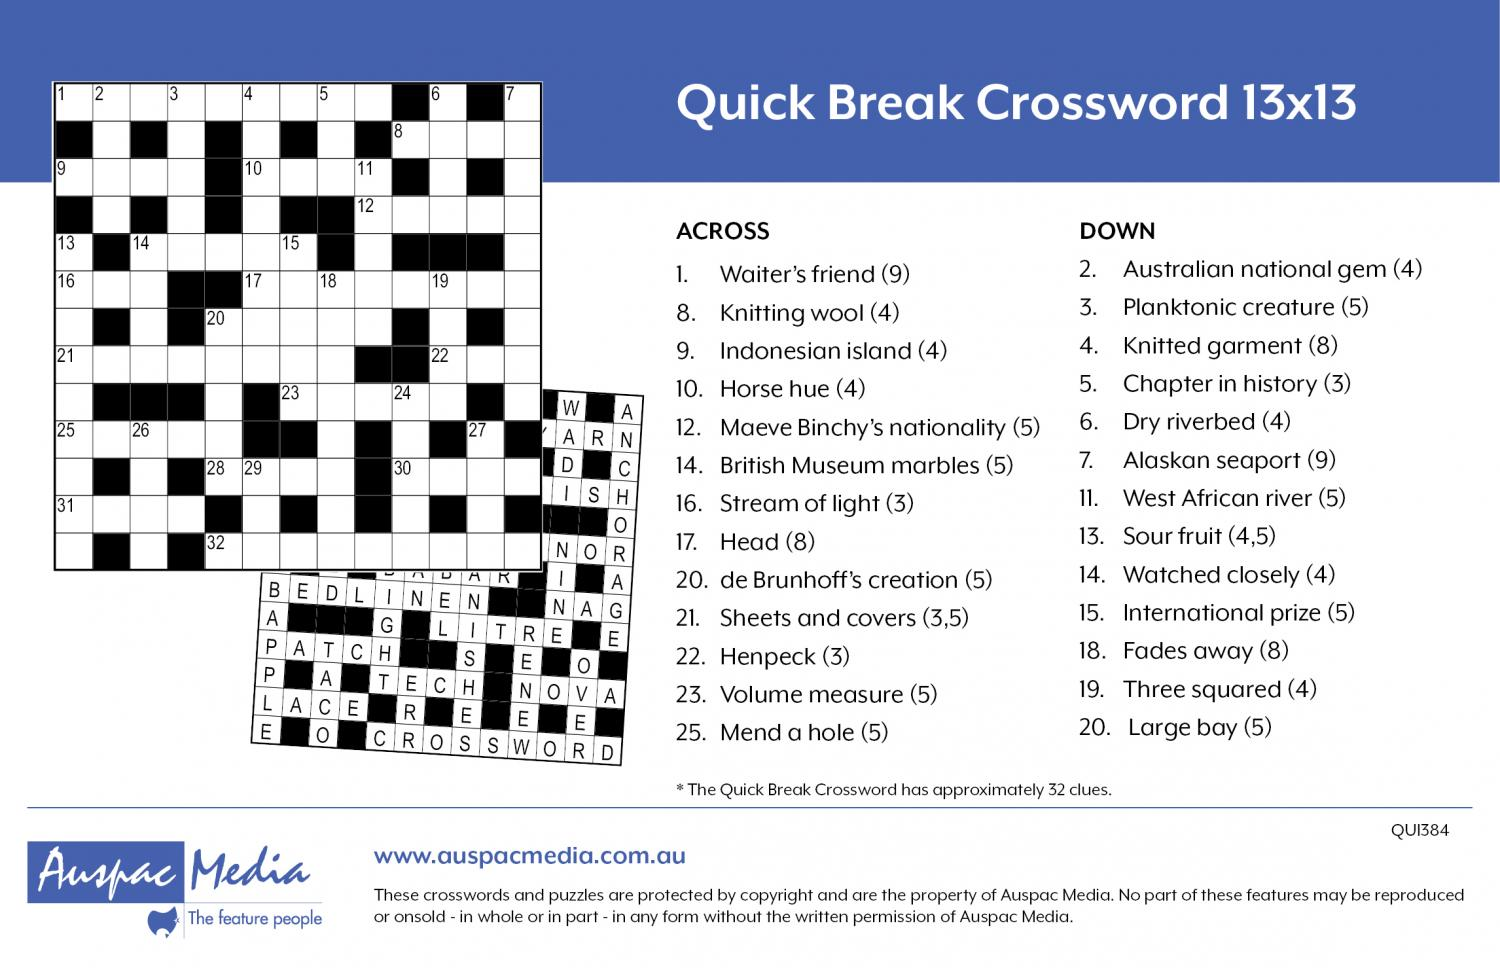 Thumbnail for Quick Break Crossword 13x13